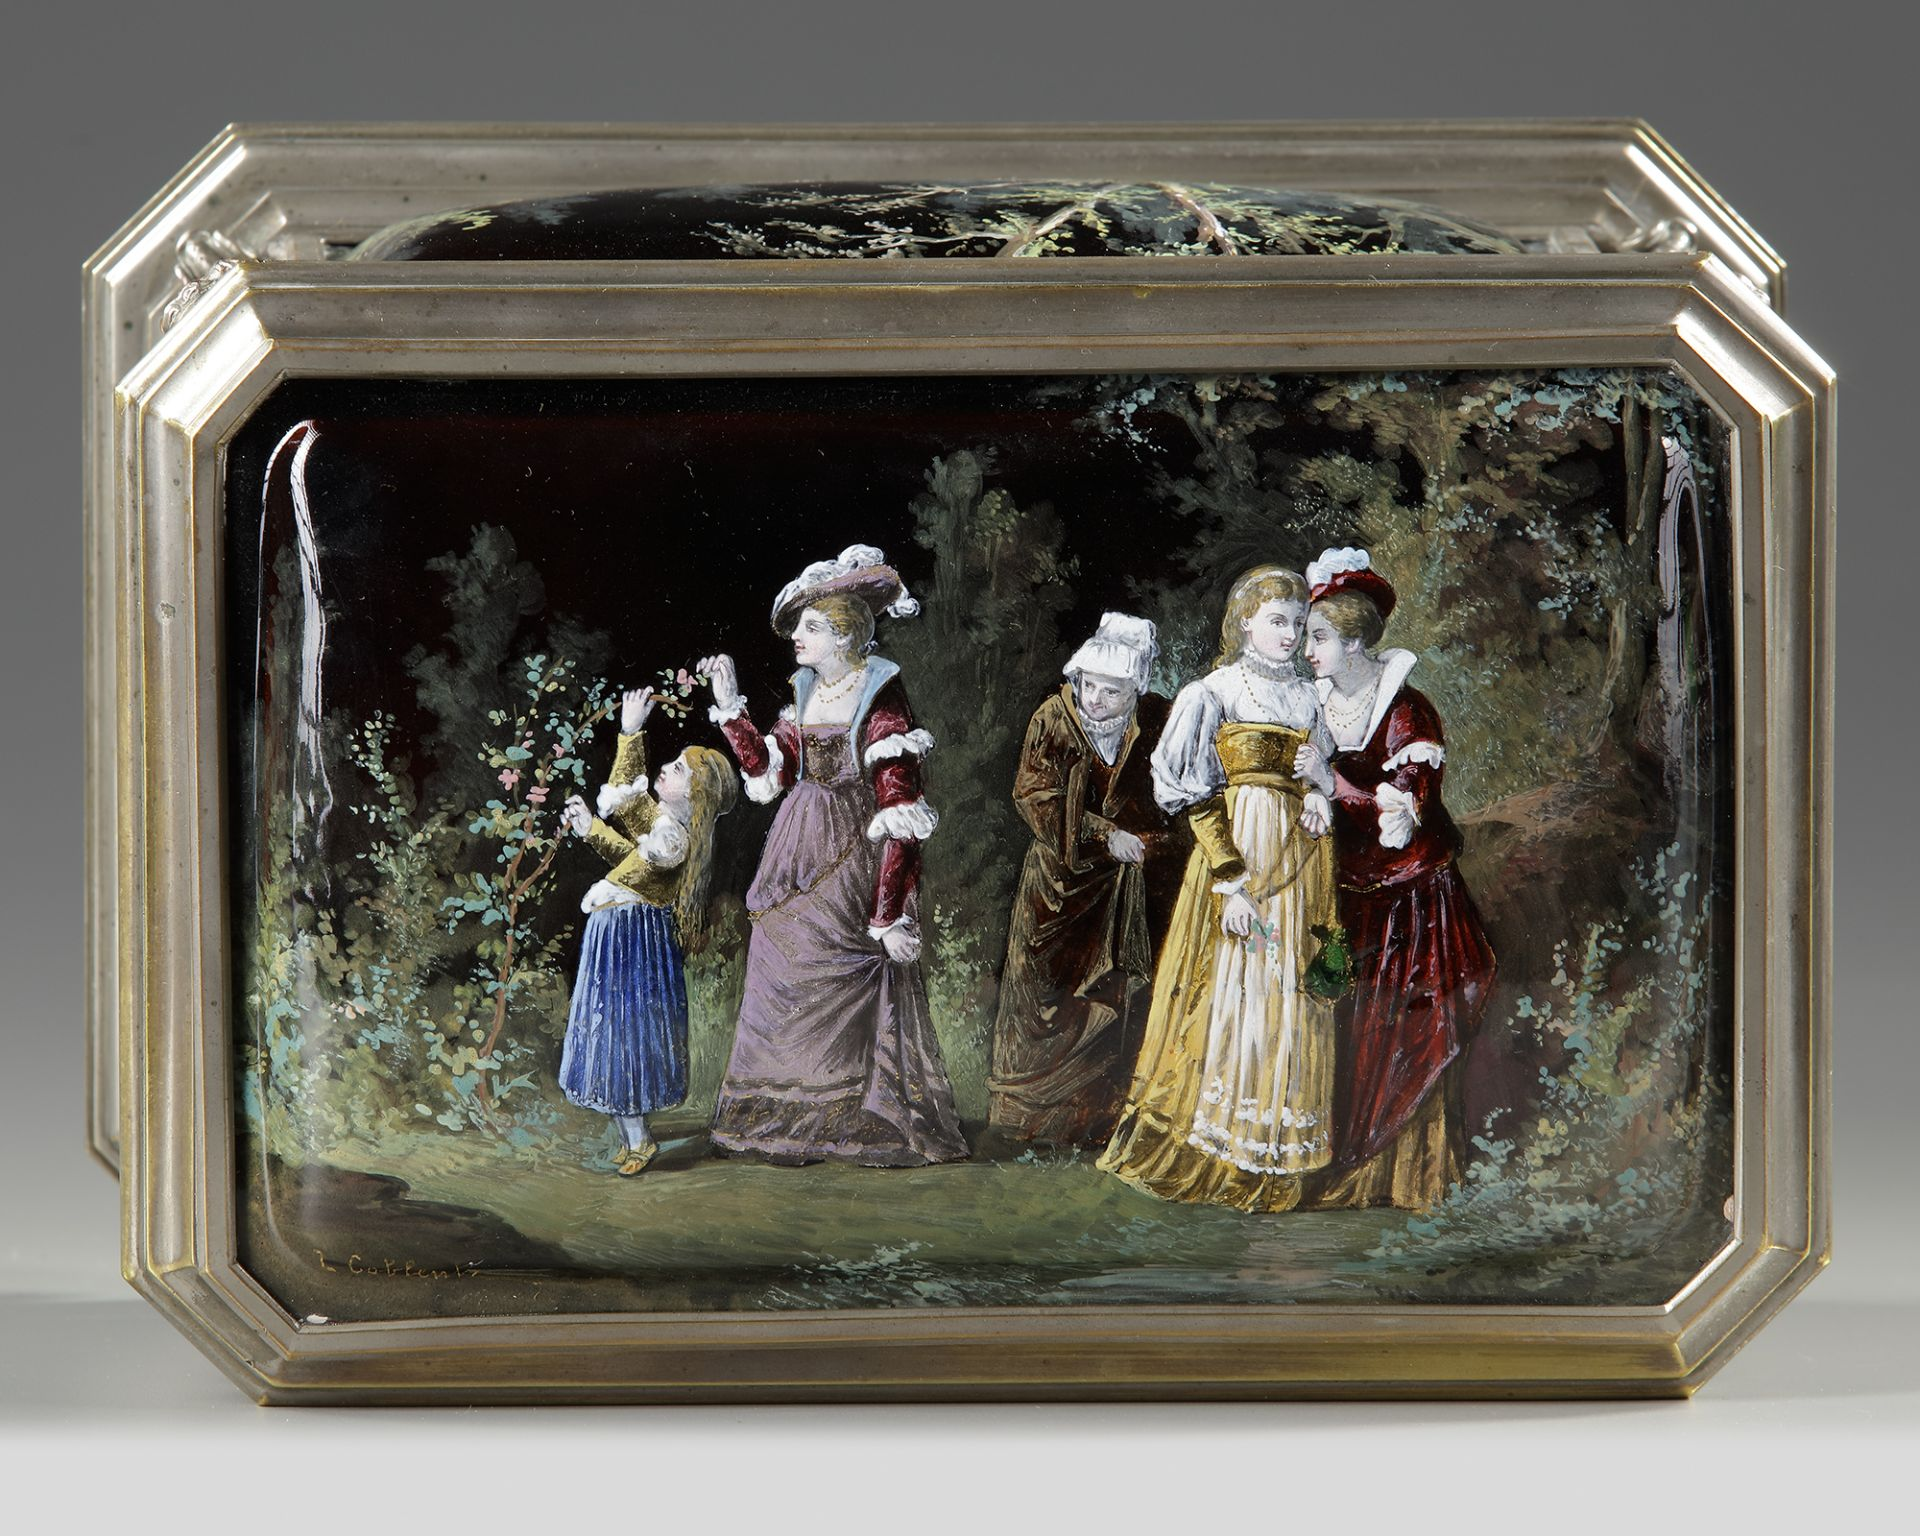 A JEWELRY BOX, FRANCE, LATE 19TH CENTURY - Image 2 of 4